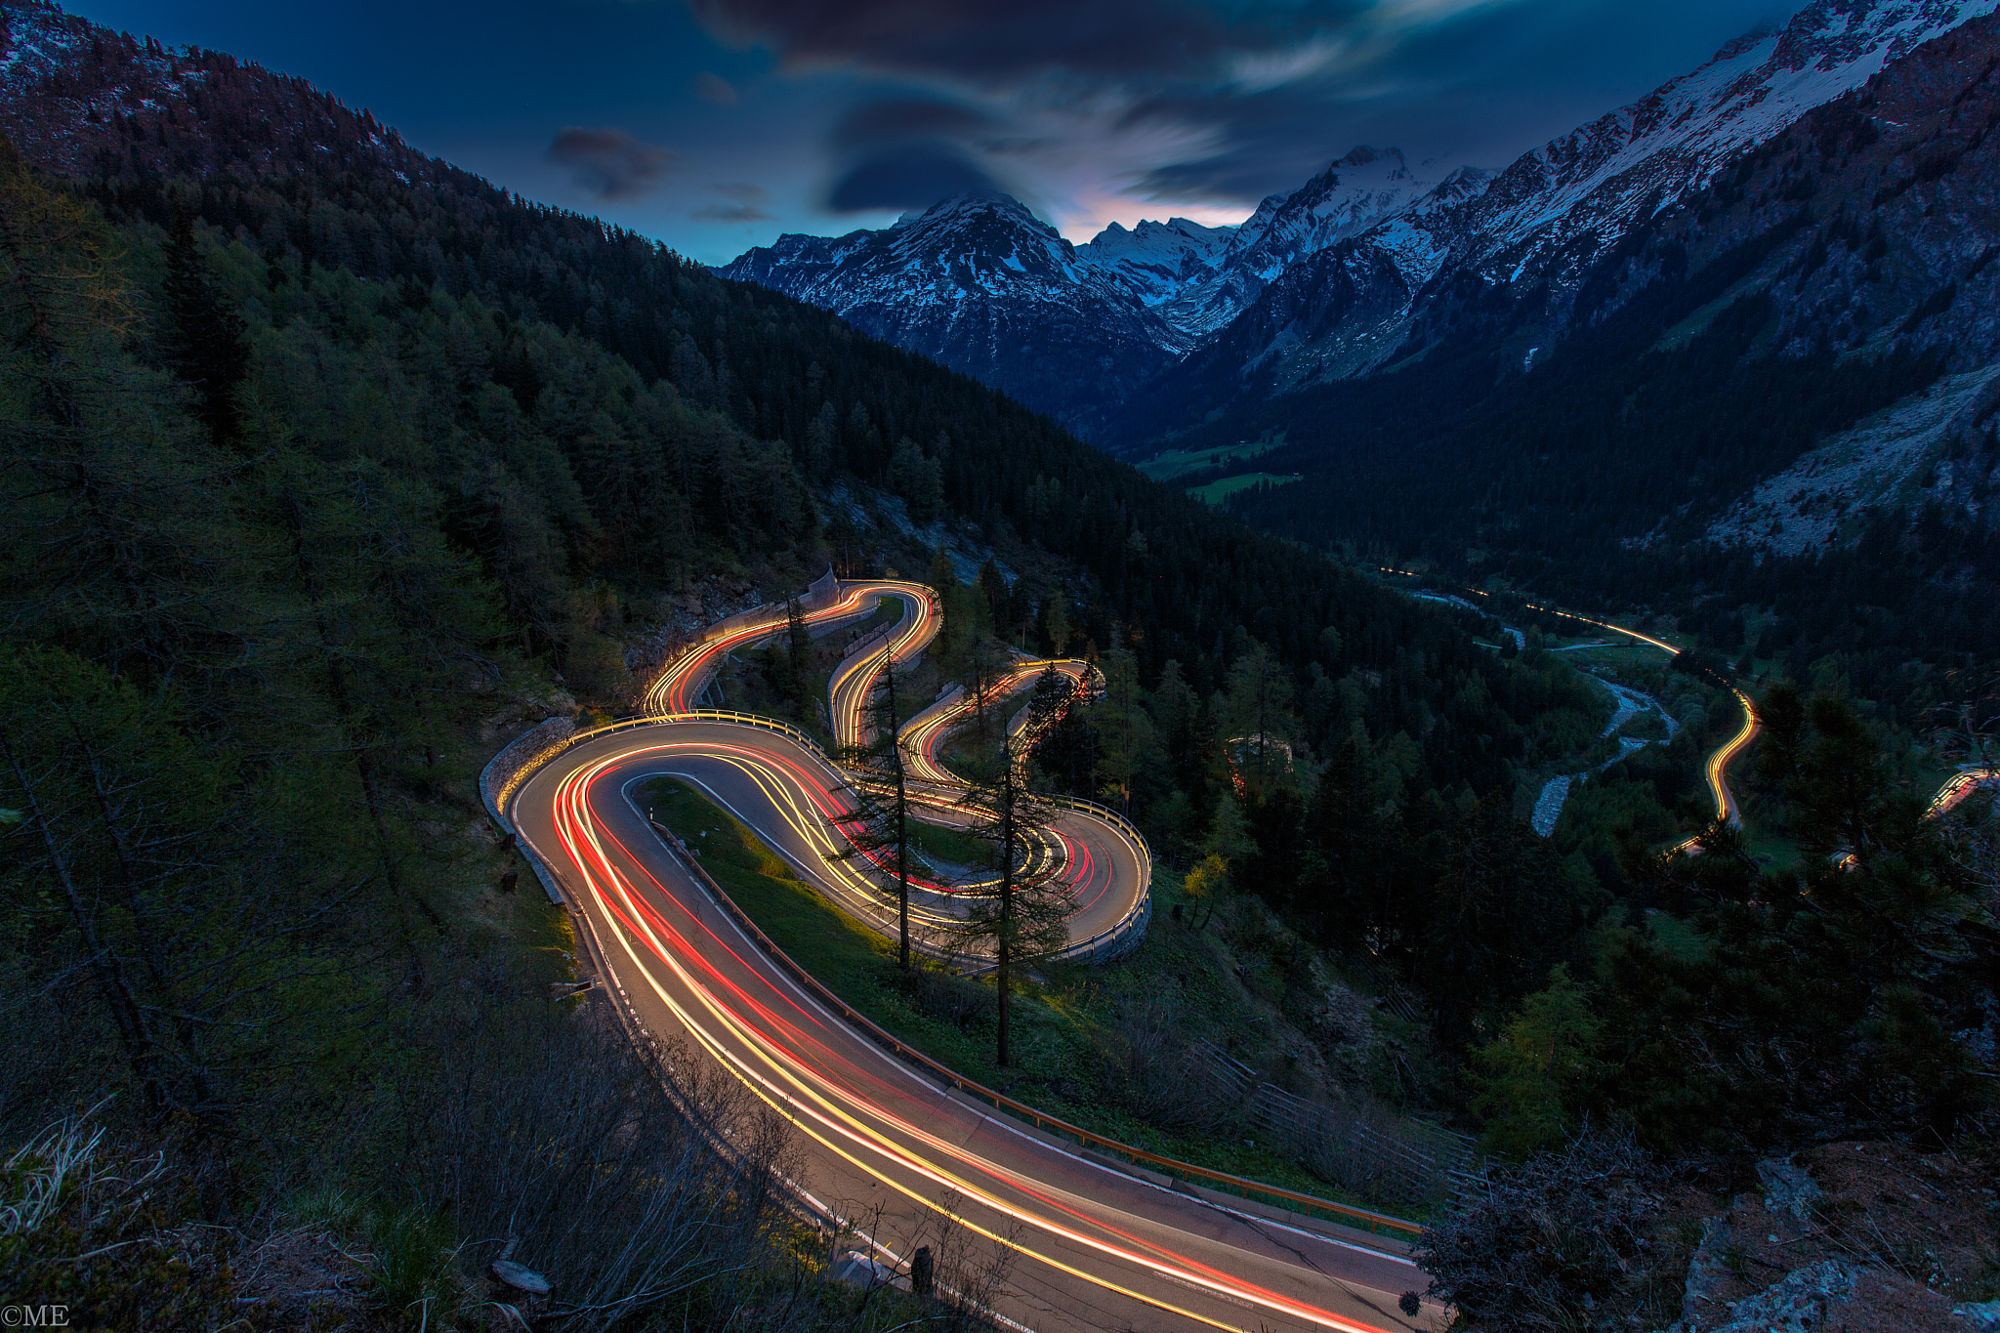 Mountain Road At Night Hd Wallpaper Background Image 2000x1333